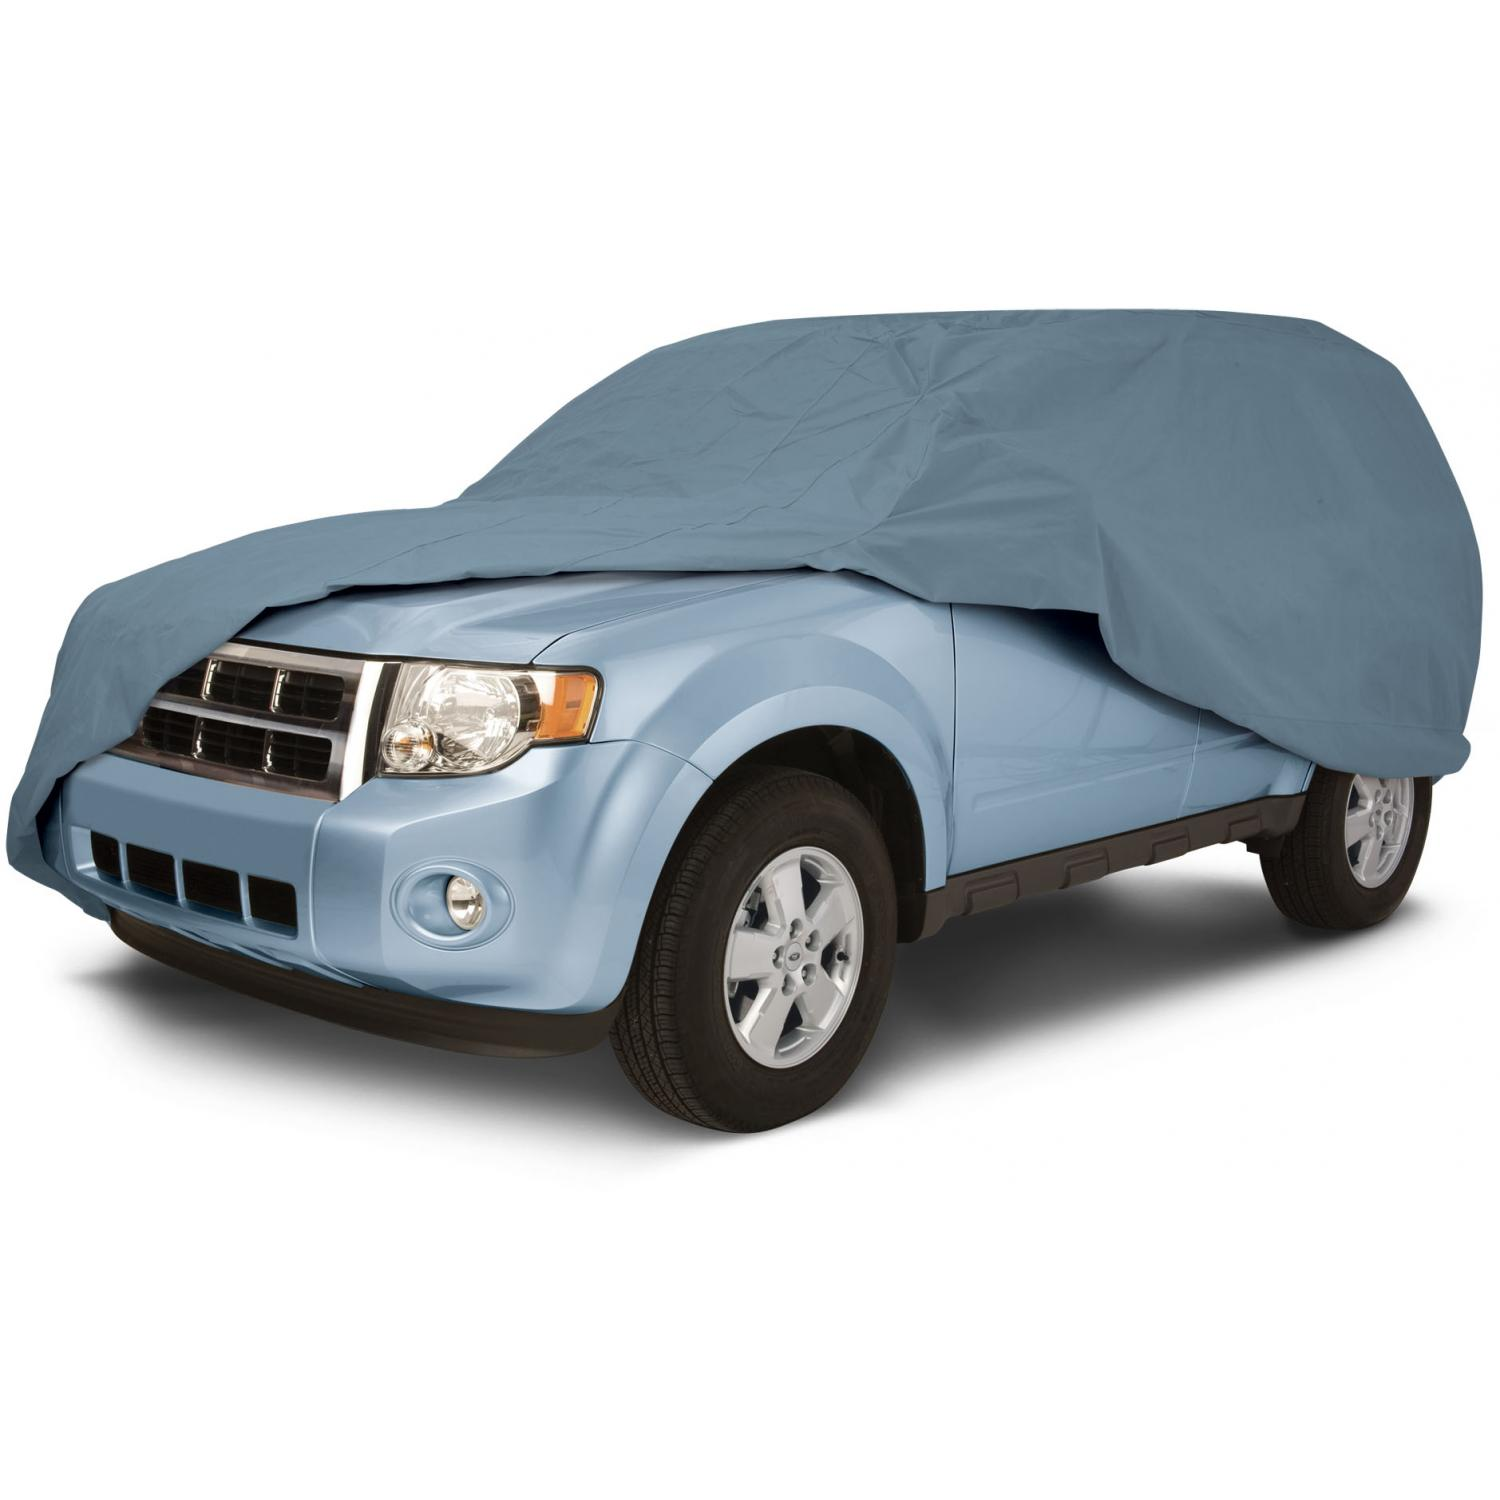 Classic Accessories PolyPRO 1 Vehicle Cover - Compact SUV/Pickup